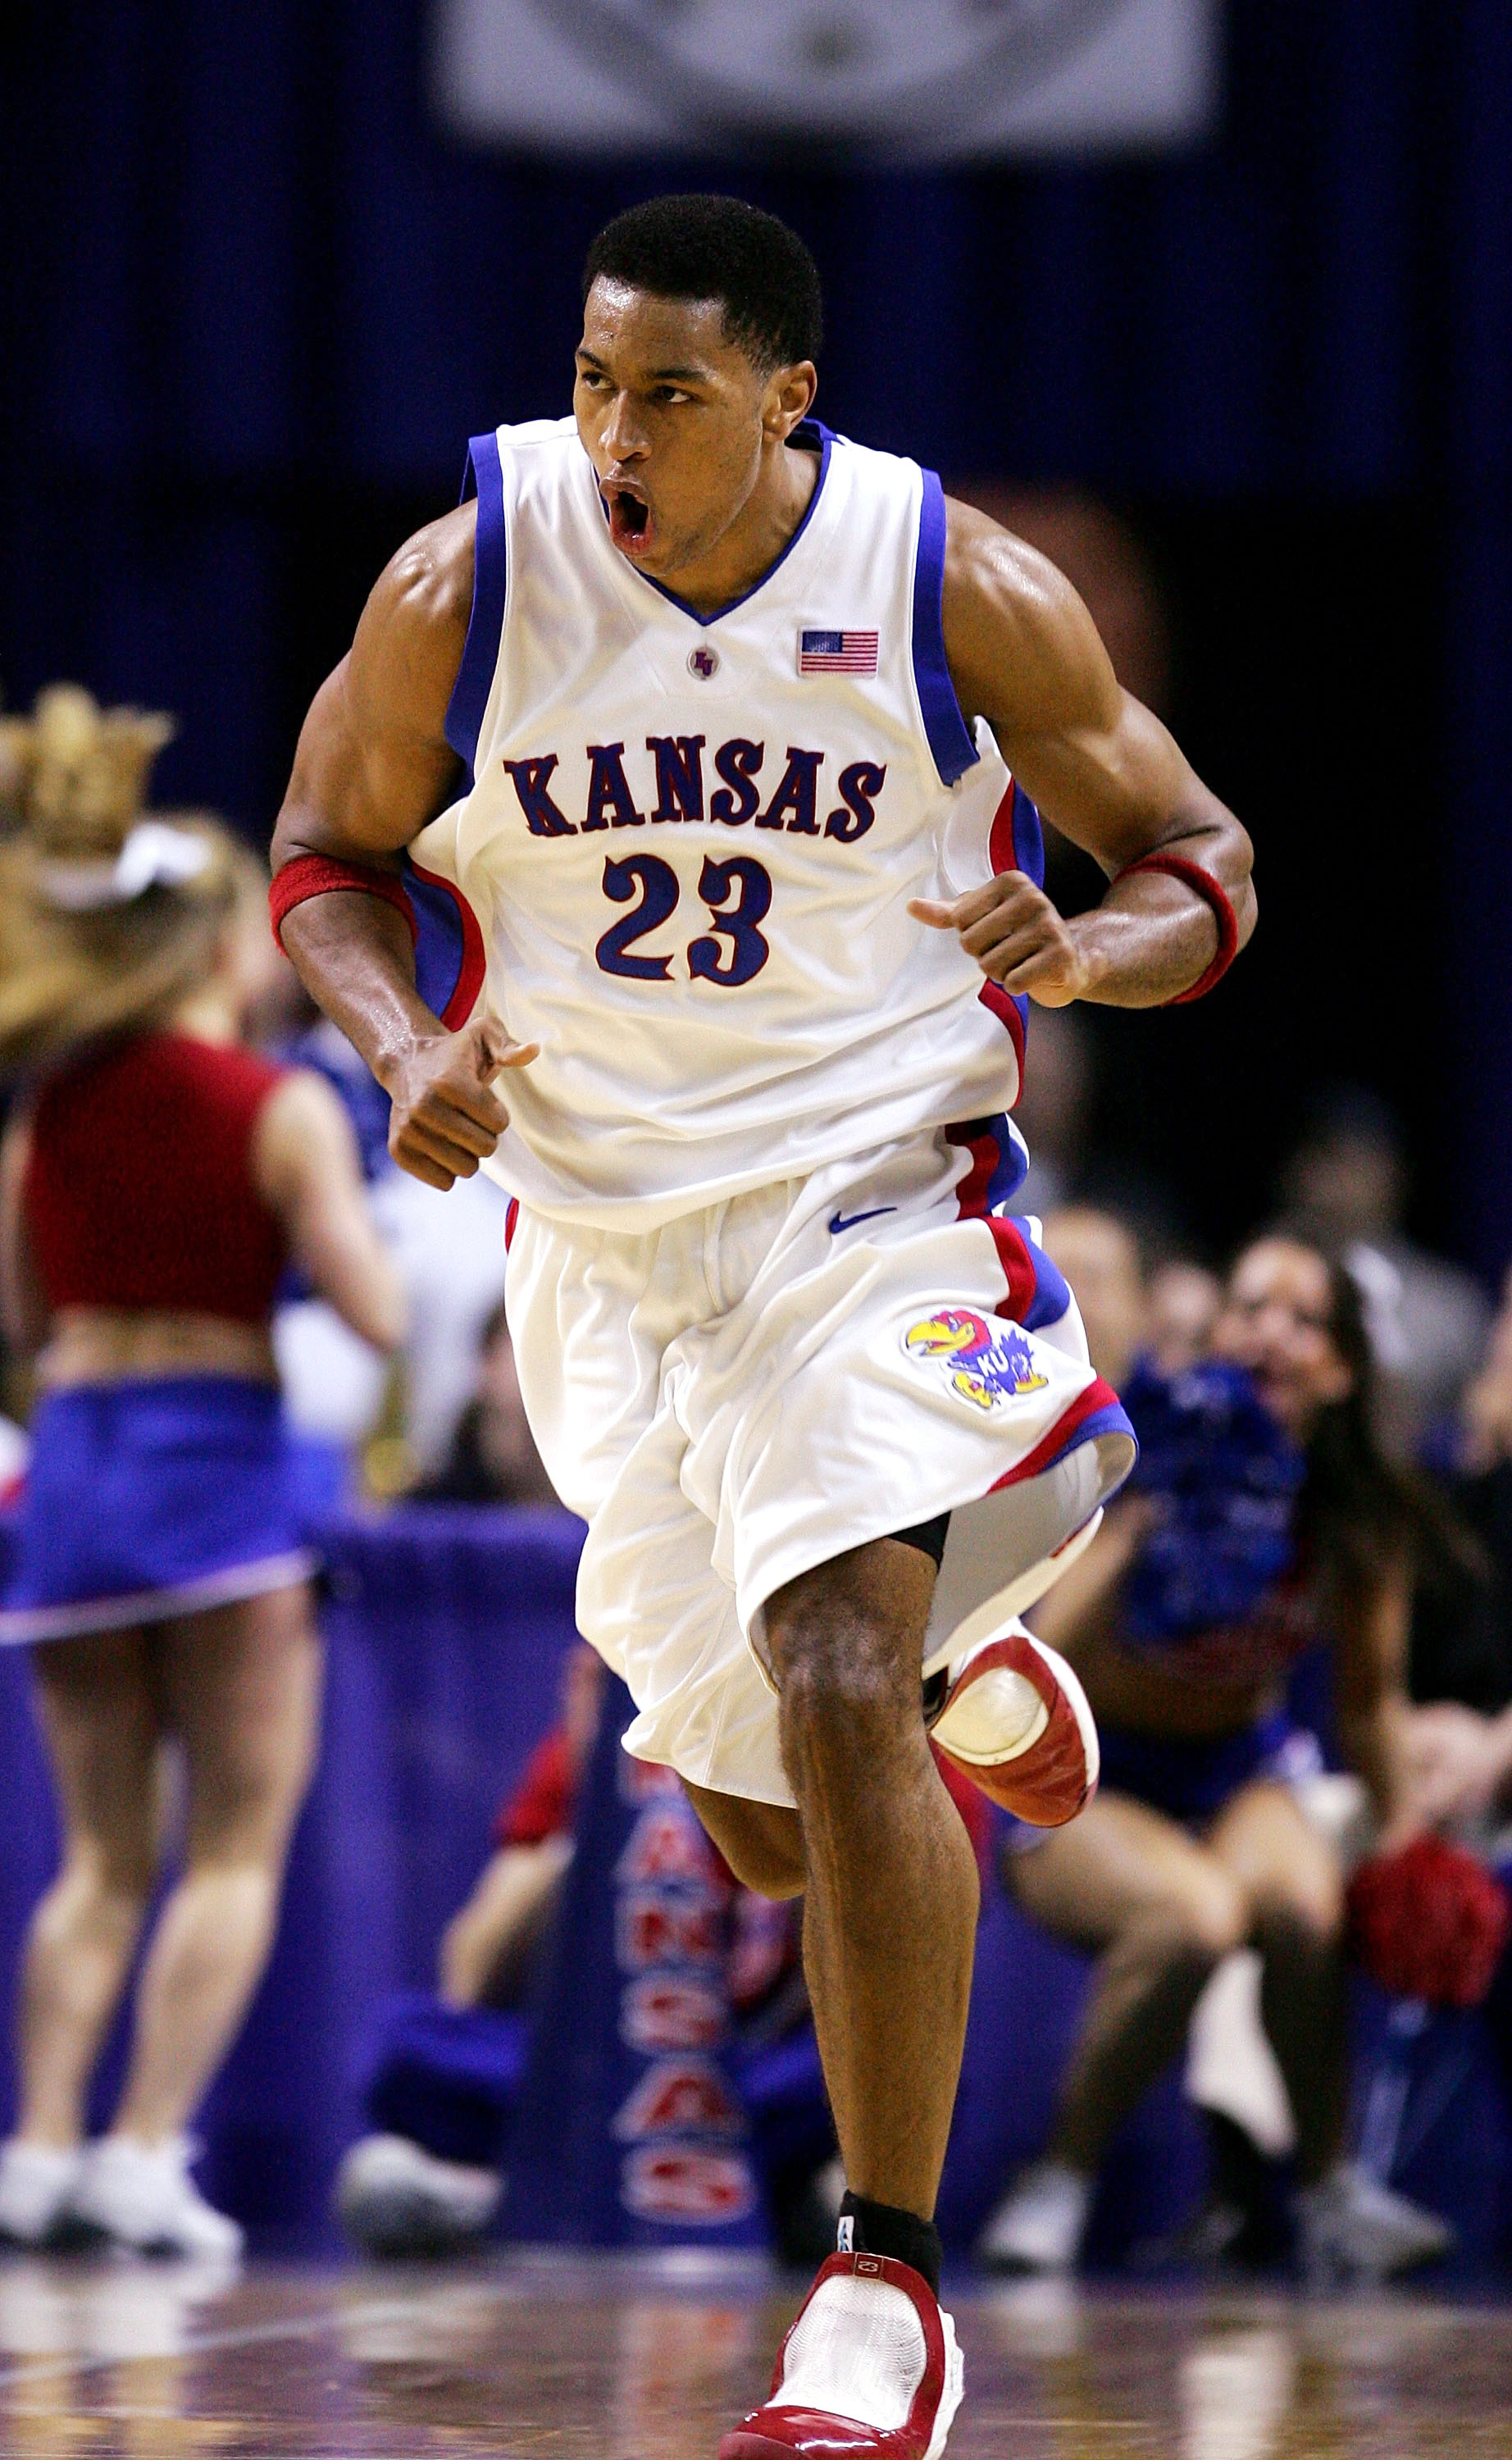 KANSAS CITY, MO - MARCH 11:  Wayne Simien #23 of the Kansas Jayhawks is excited as he runs back on defense in the second half against the Kansas State Wildcats in Day 2 of the Phillips 66 Big 12 Men's Basketball Tournament at Kemper Arena on March 11, 200